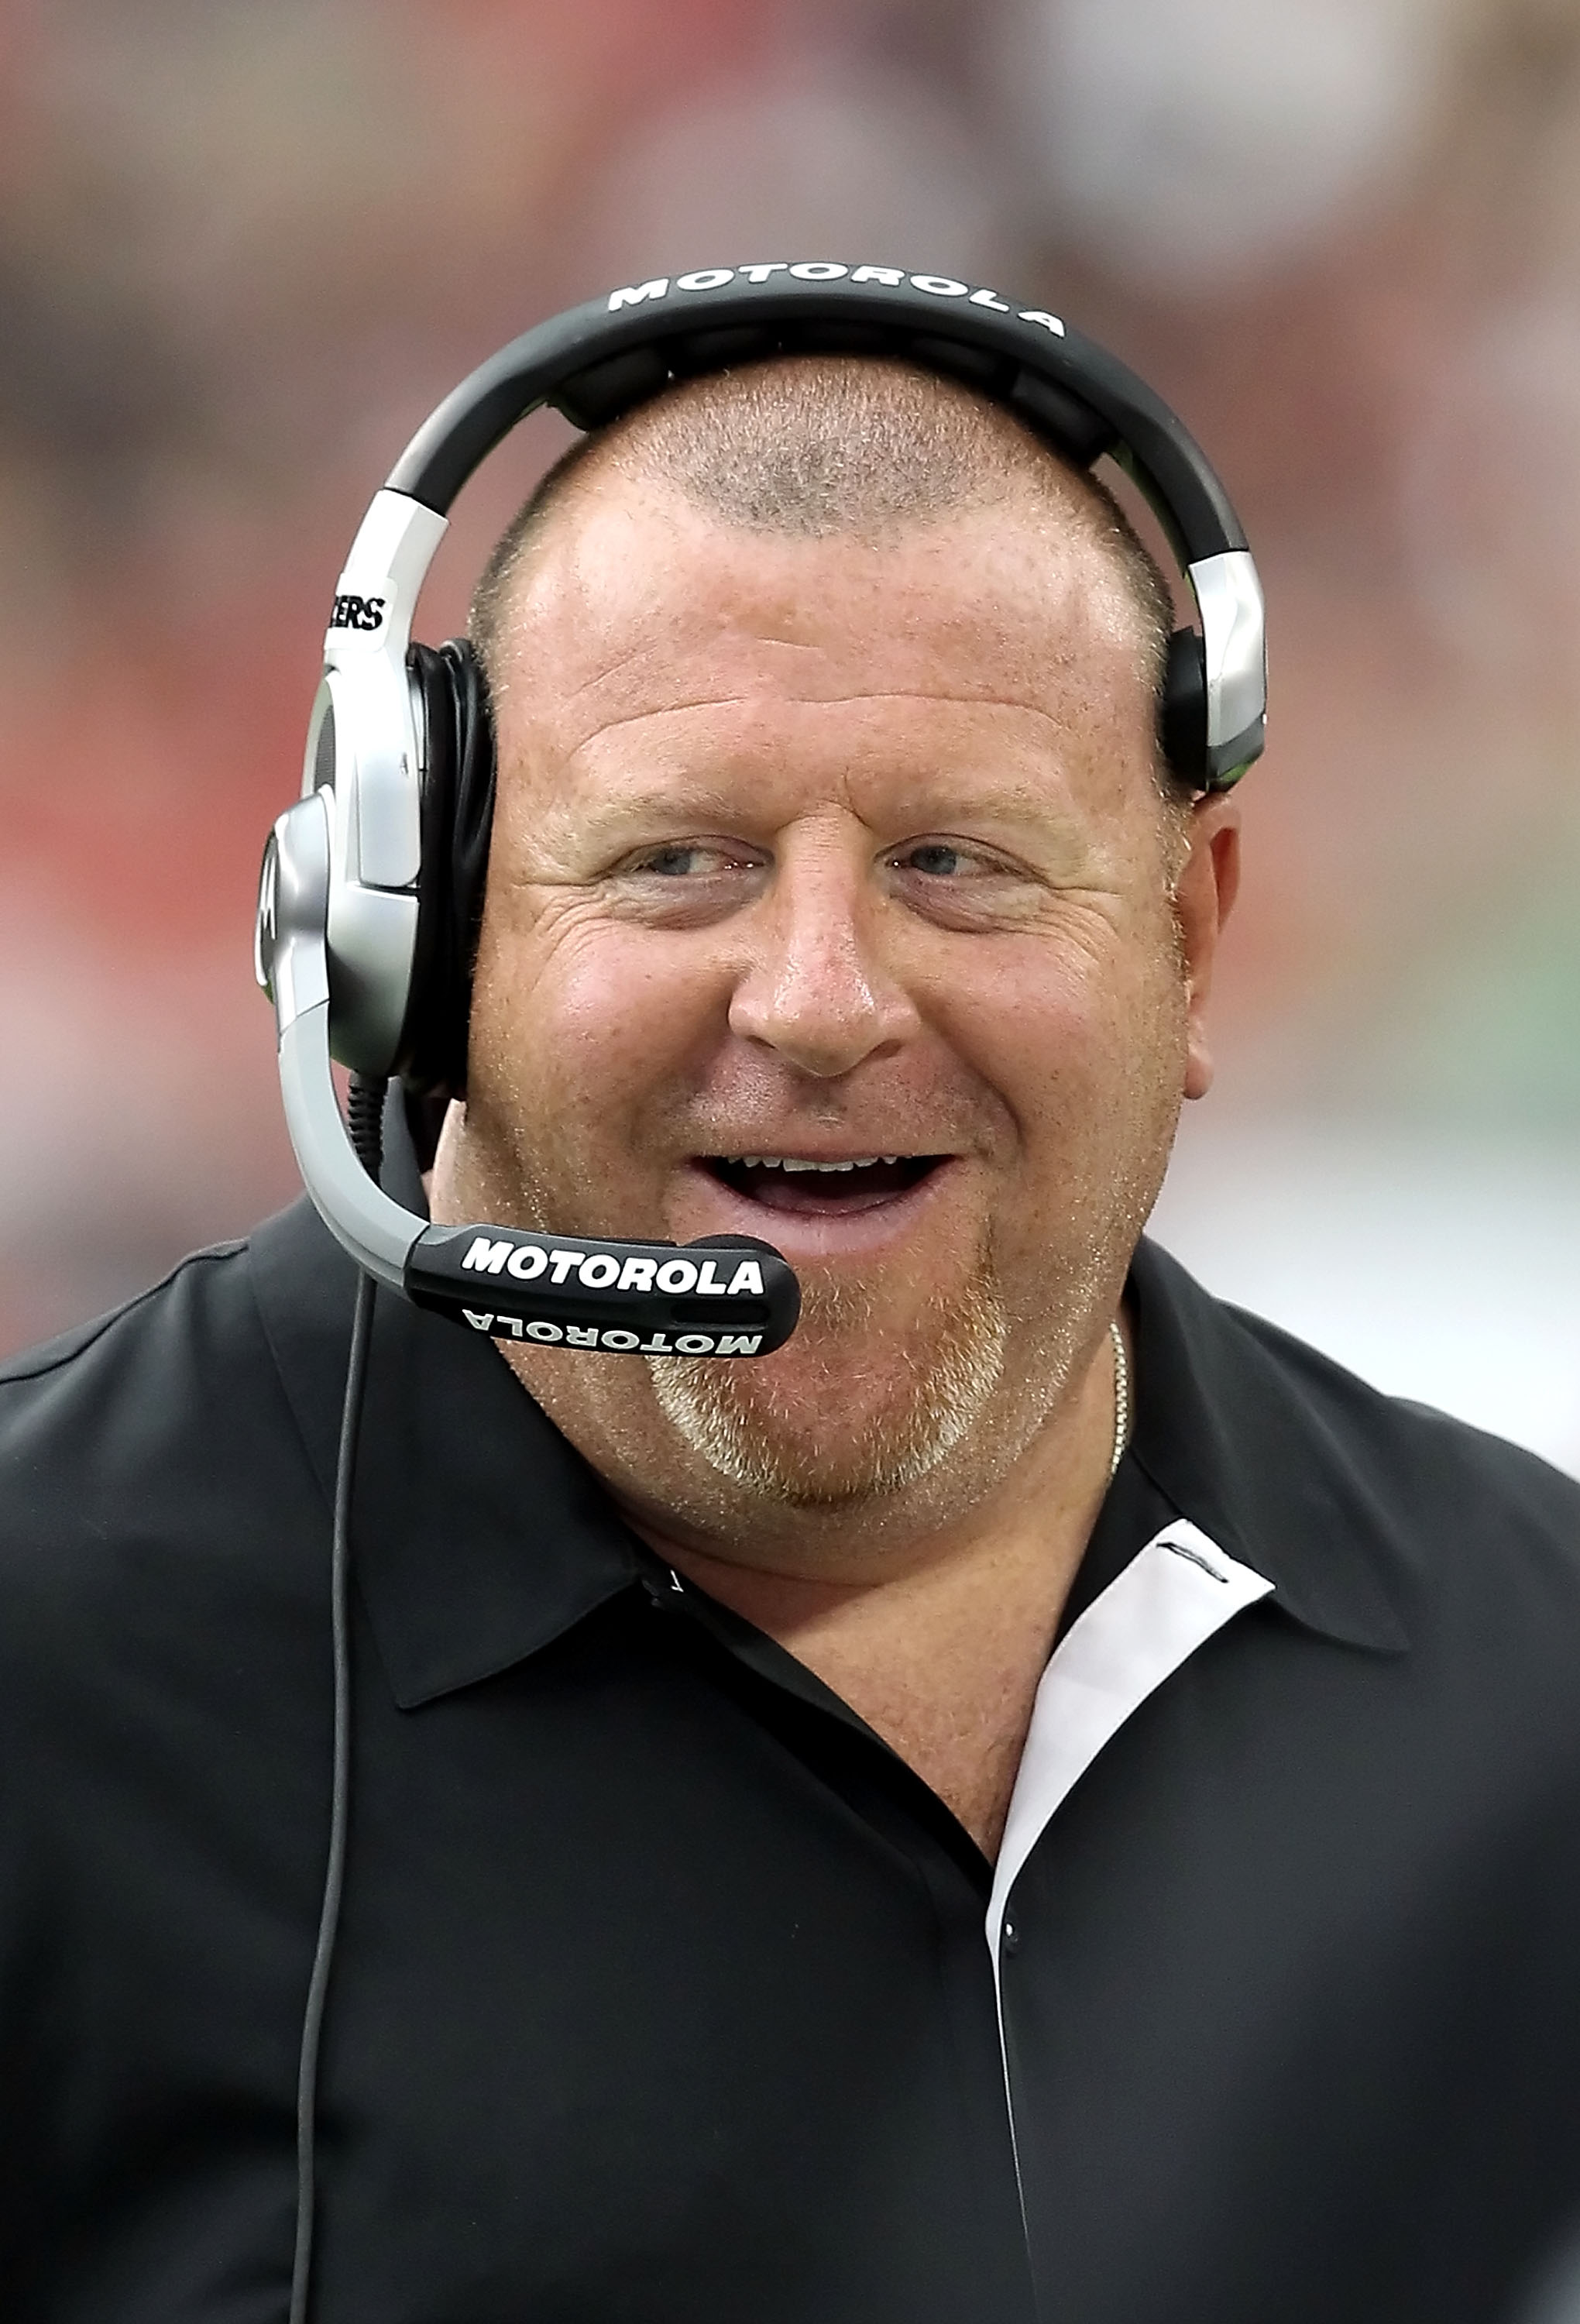 GLENDALE, AZ - SEPTEMBER 26:  Head coach Tom Cable of the Oakland Raiders smiles on the sidelines during the NFL game against the Arizona Cardinals at the University of Phoenix Stadium on September 26, 2010 in Glendale, Arizona.  The Cardinals defeated th